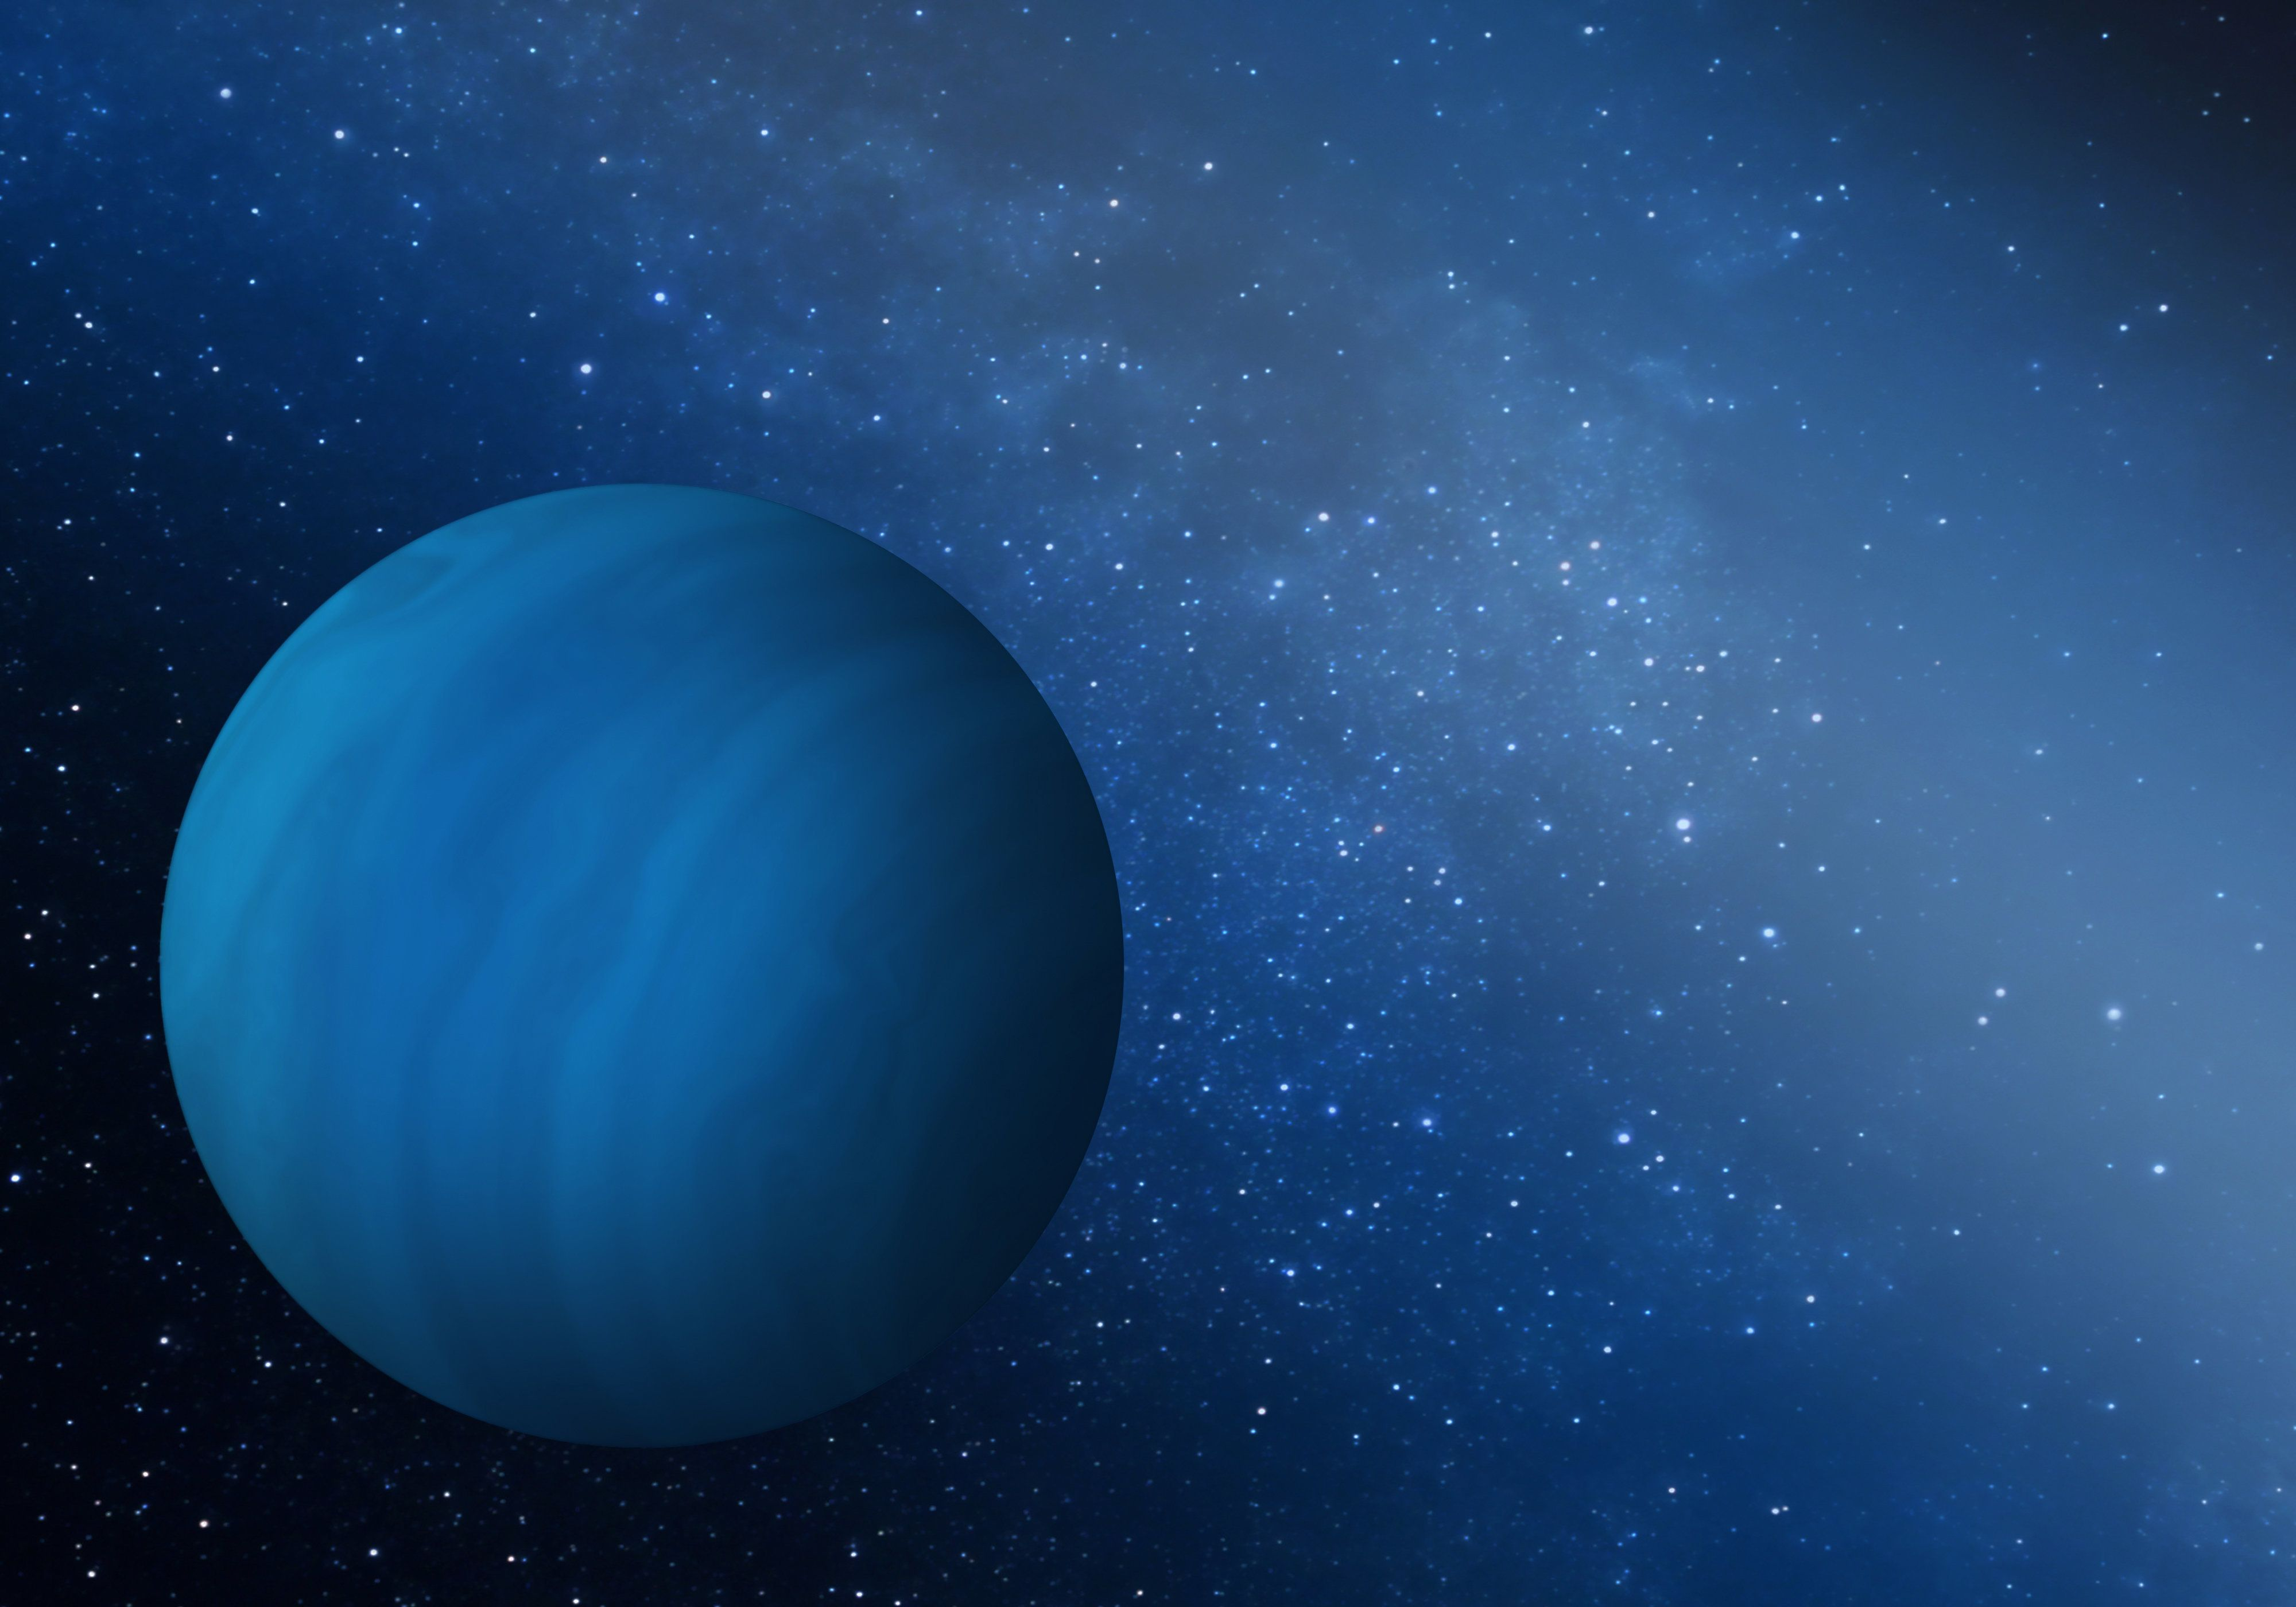 An artist's impression of the missing ice giant planet that may have been ejected from the early solar system.